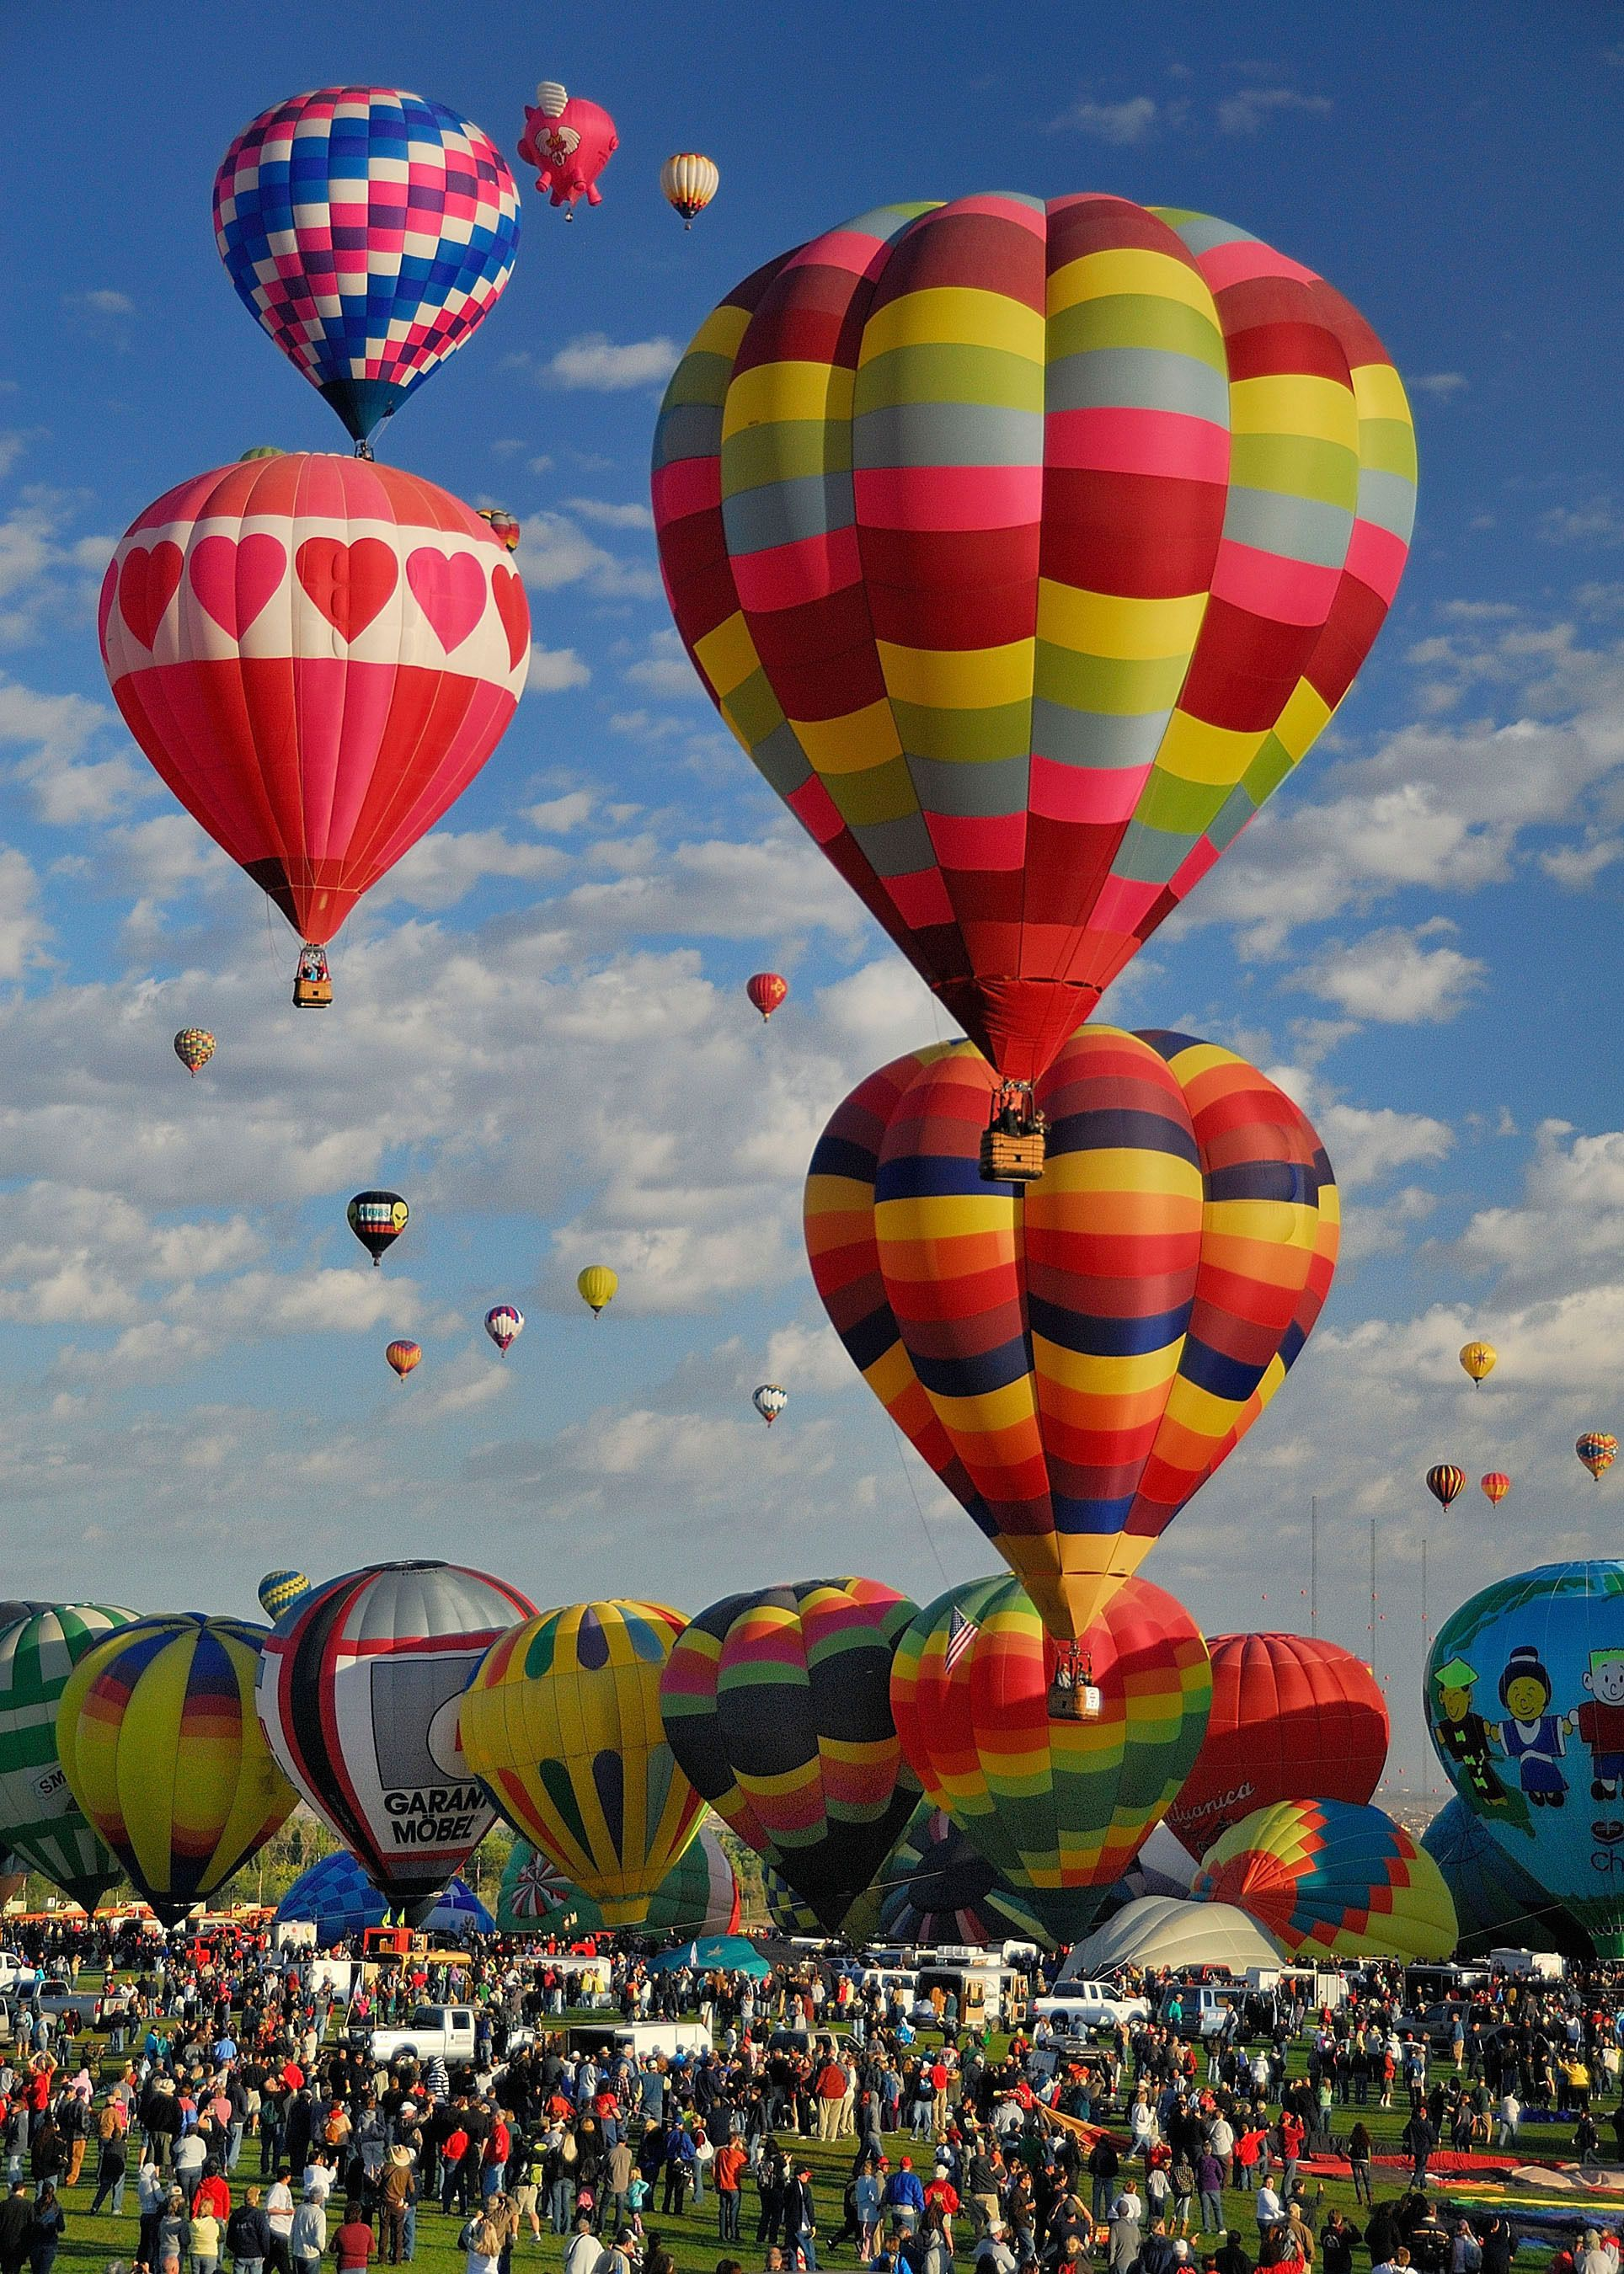 Can't wait to do this at the Albuquerque Balloon Fiesta